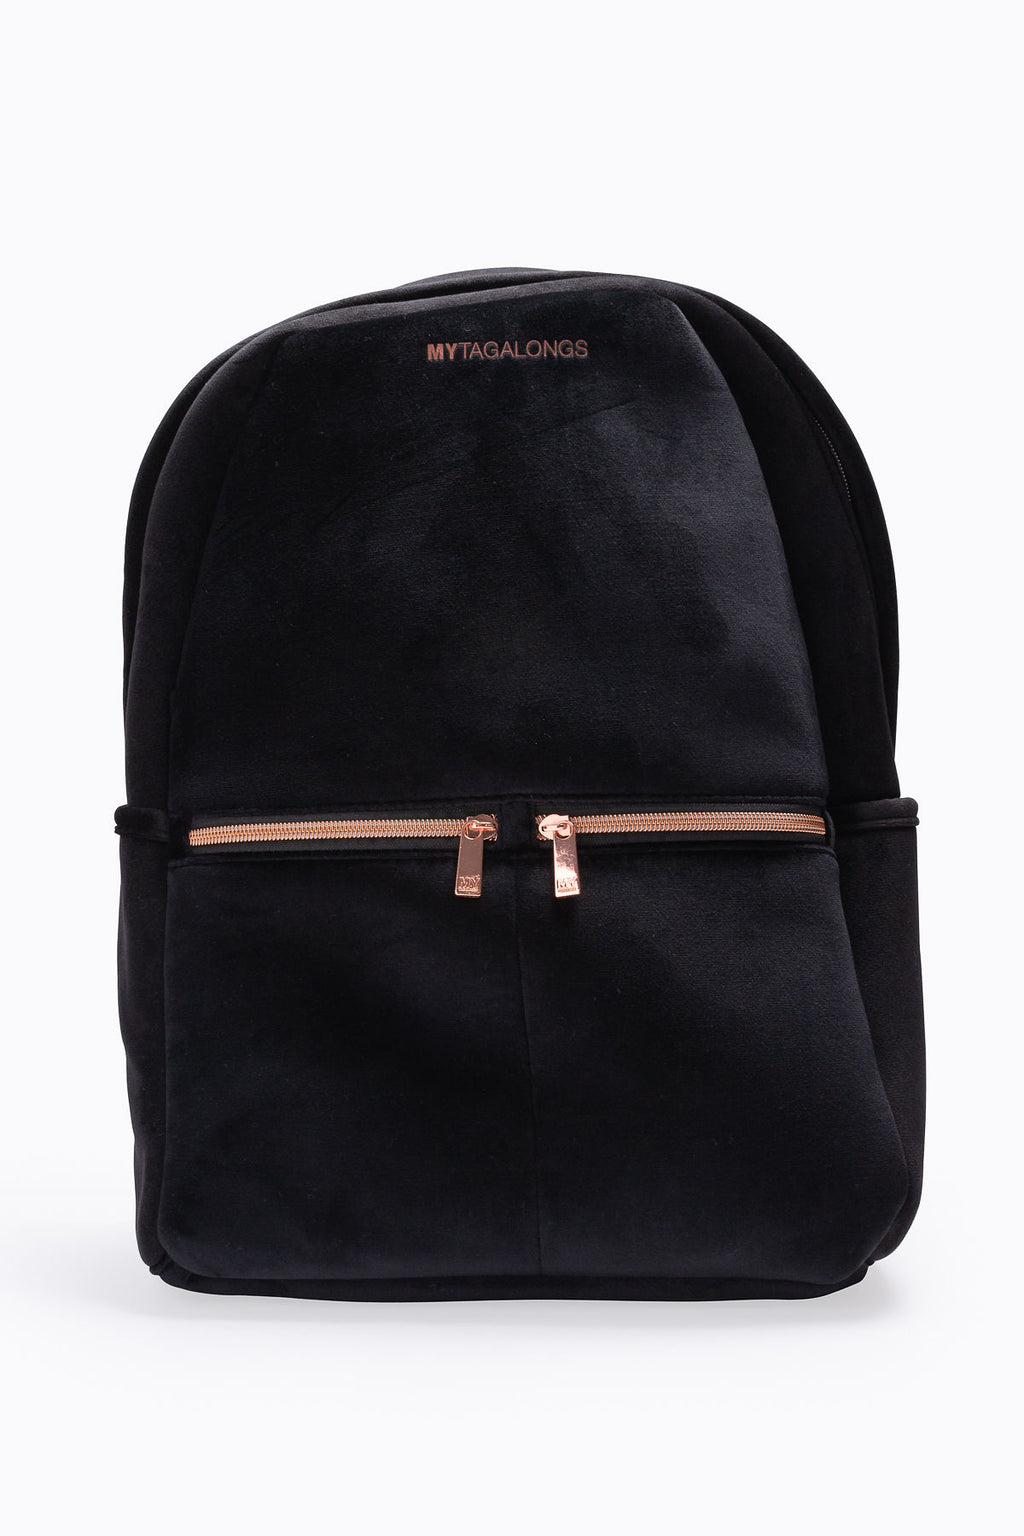 Mytagalongs: Vixen Backpack in Black Velour